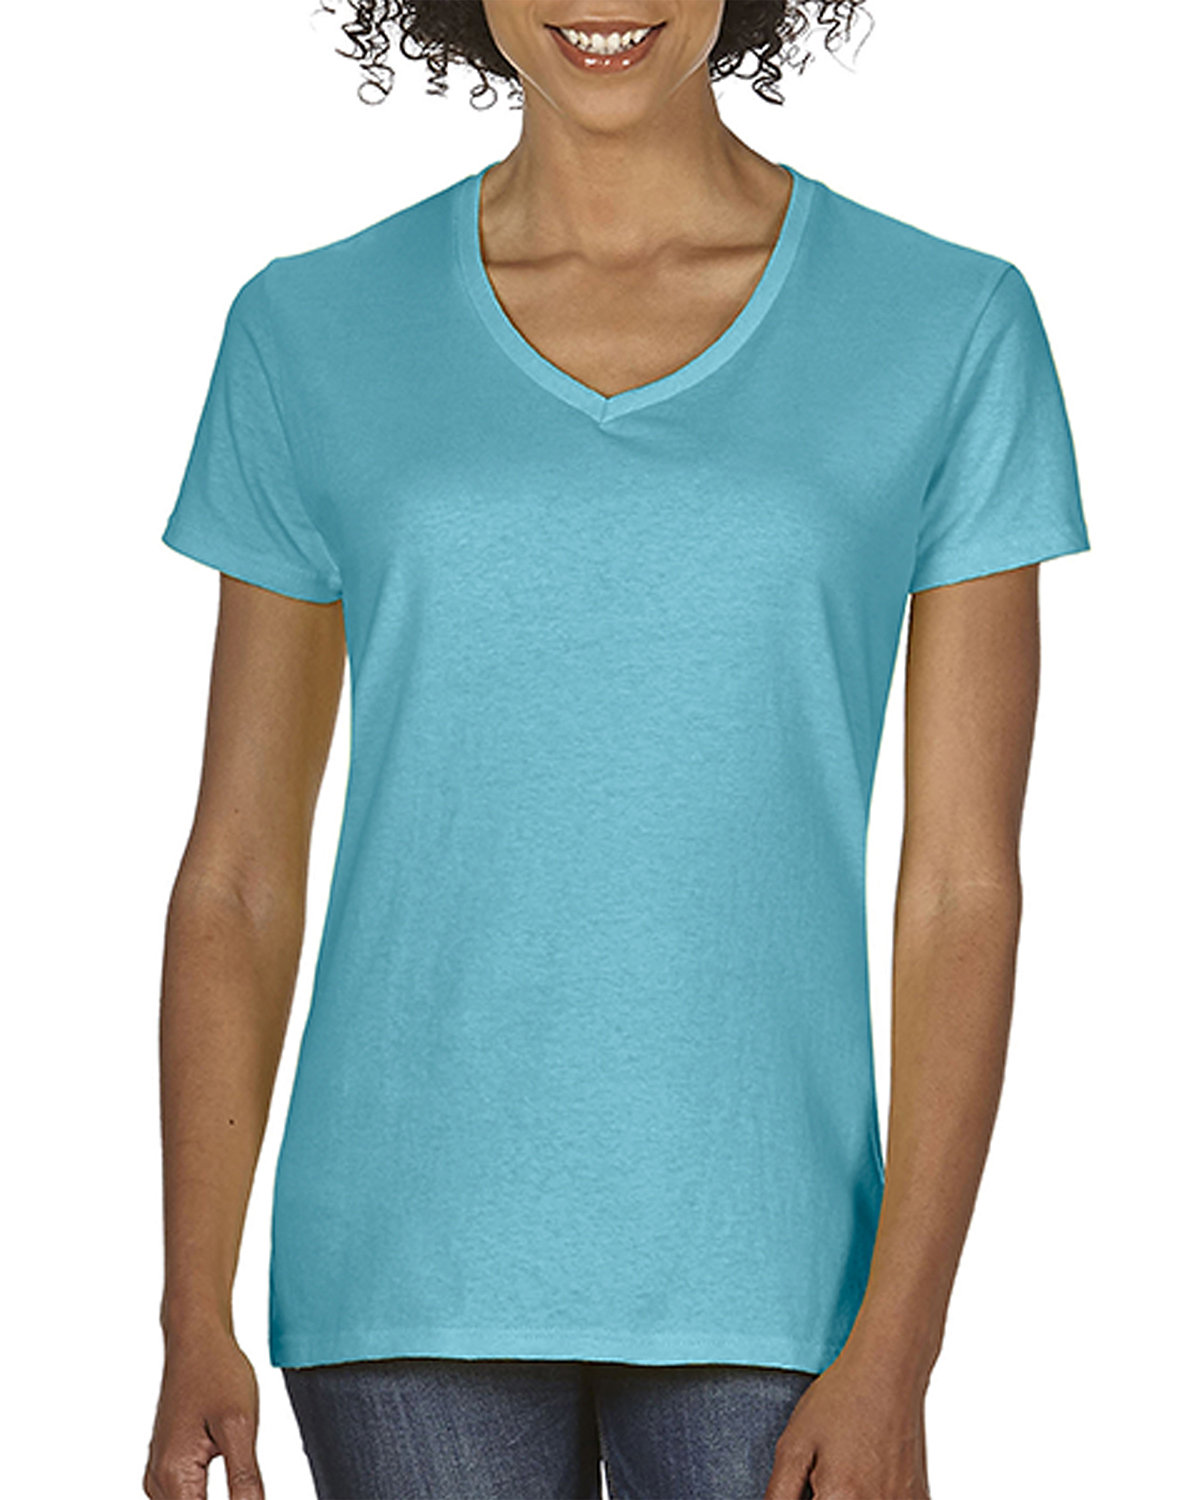 Comfort Colors Ladies' Midweight V-Neck T-Shirt LAGOON BLUE